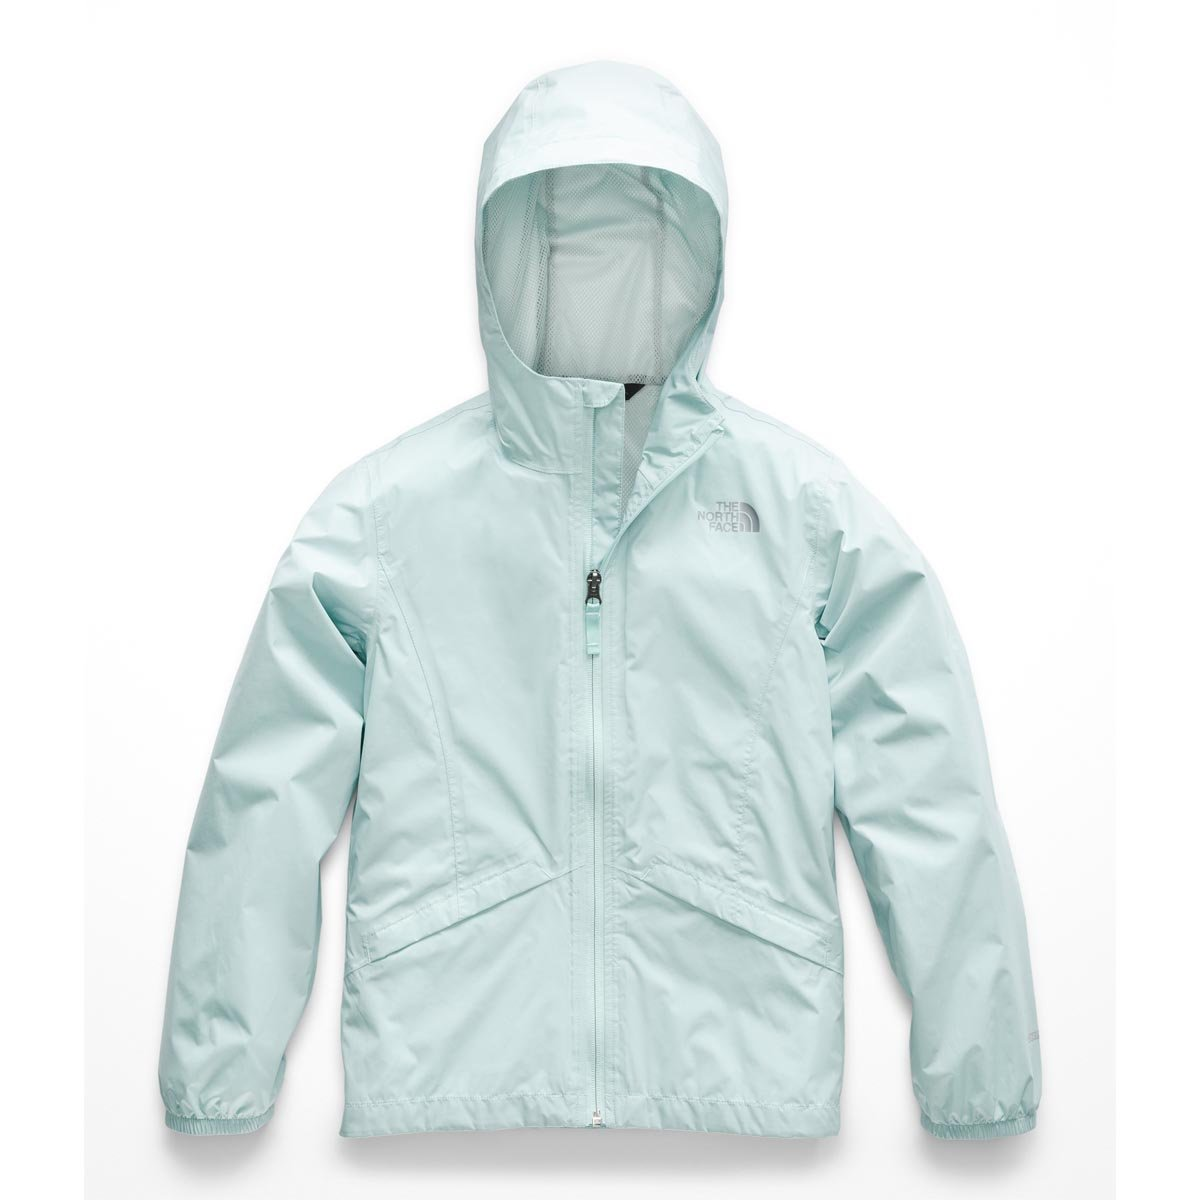 The North Face Girl's Zipline Jacket - Origin Blue - M